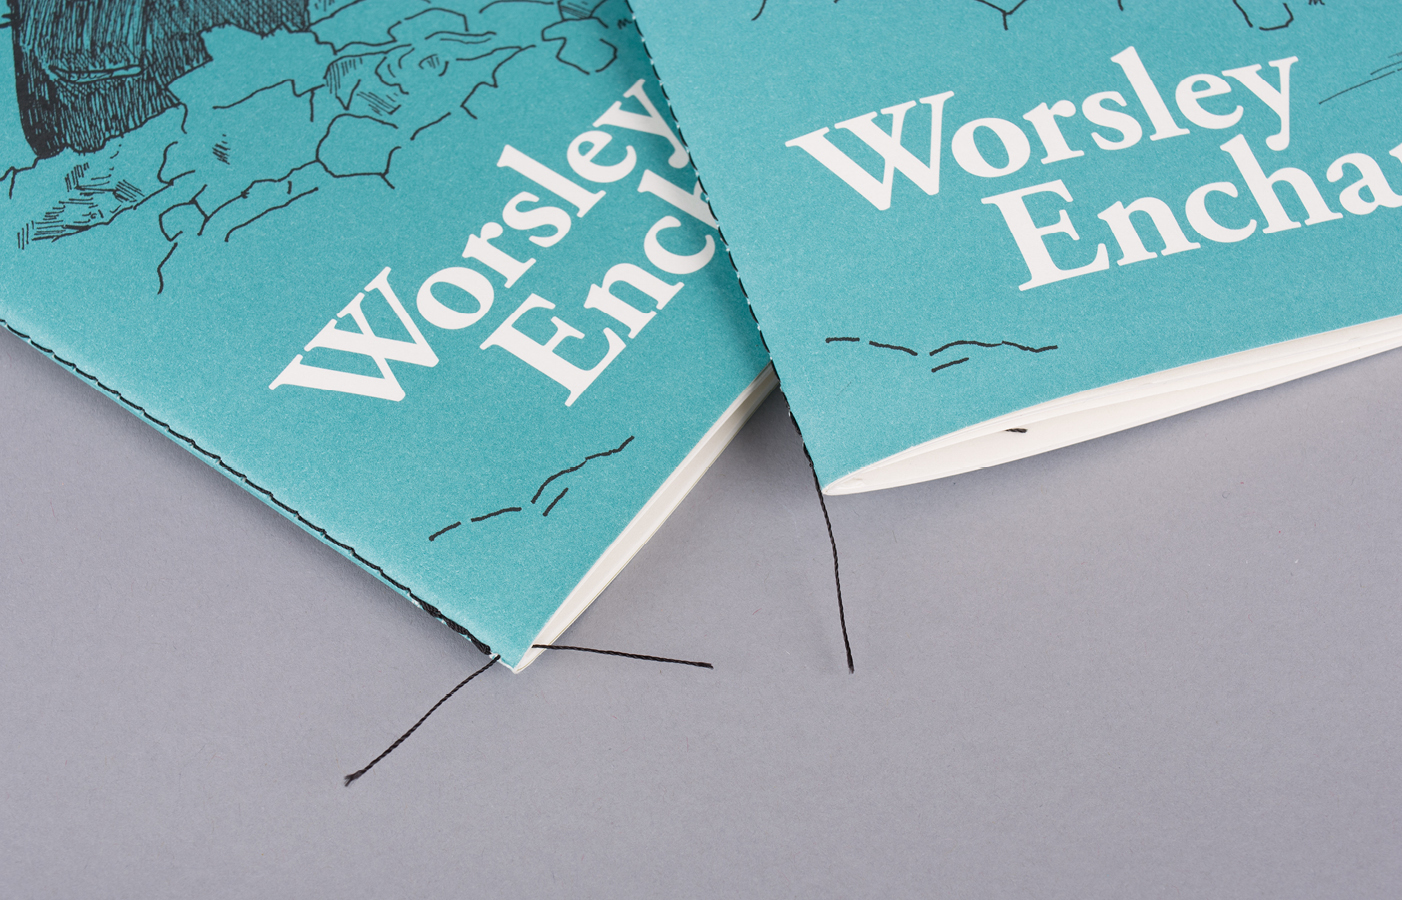 Worsley Enchanted poetry book